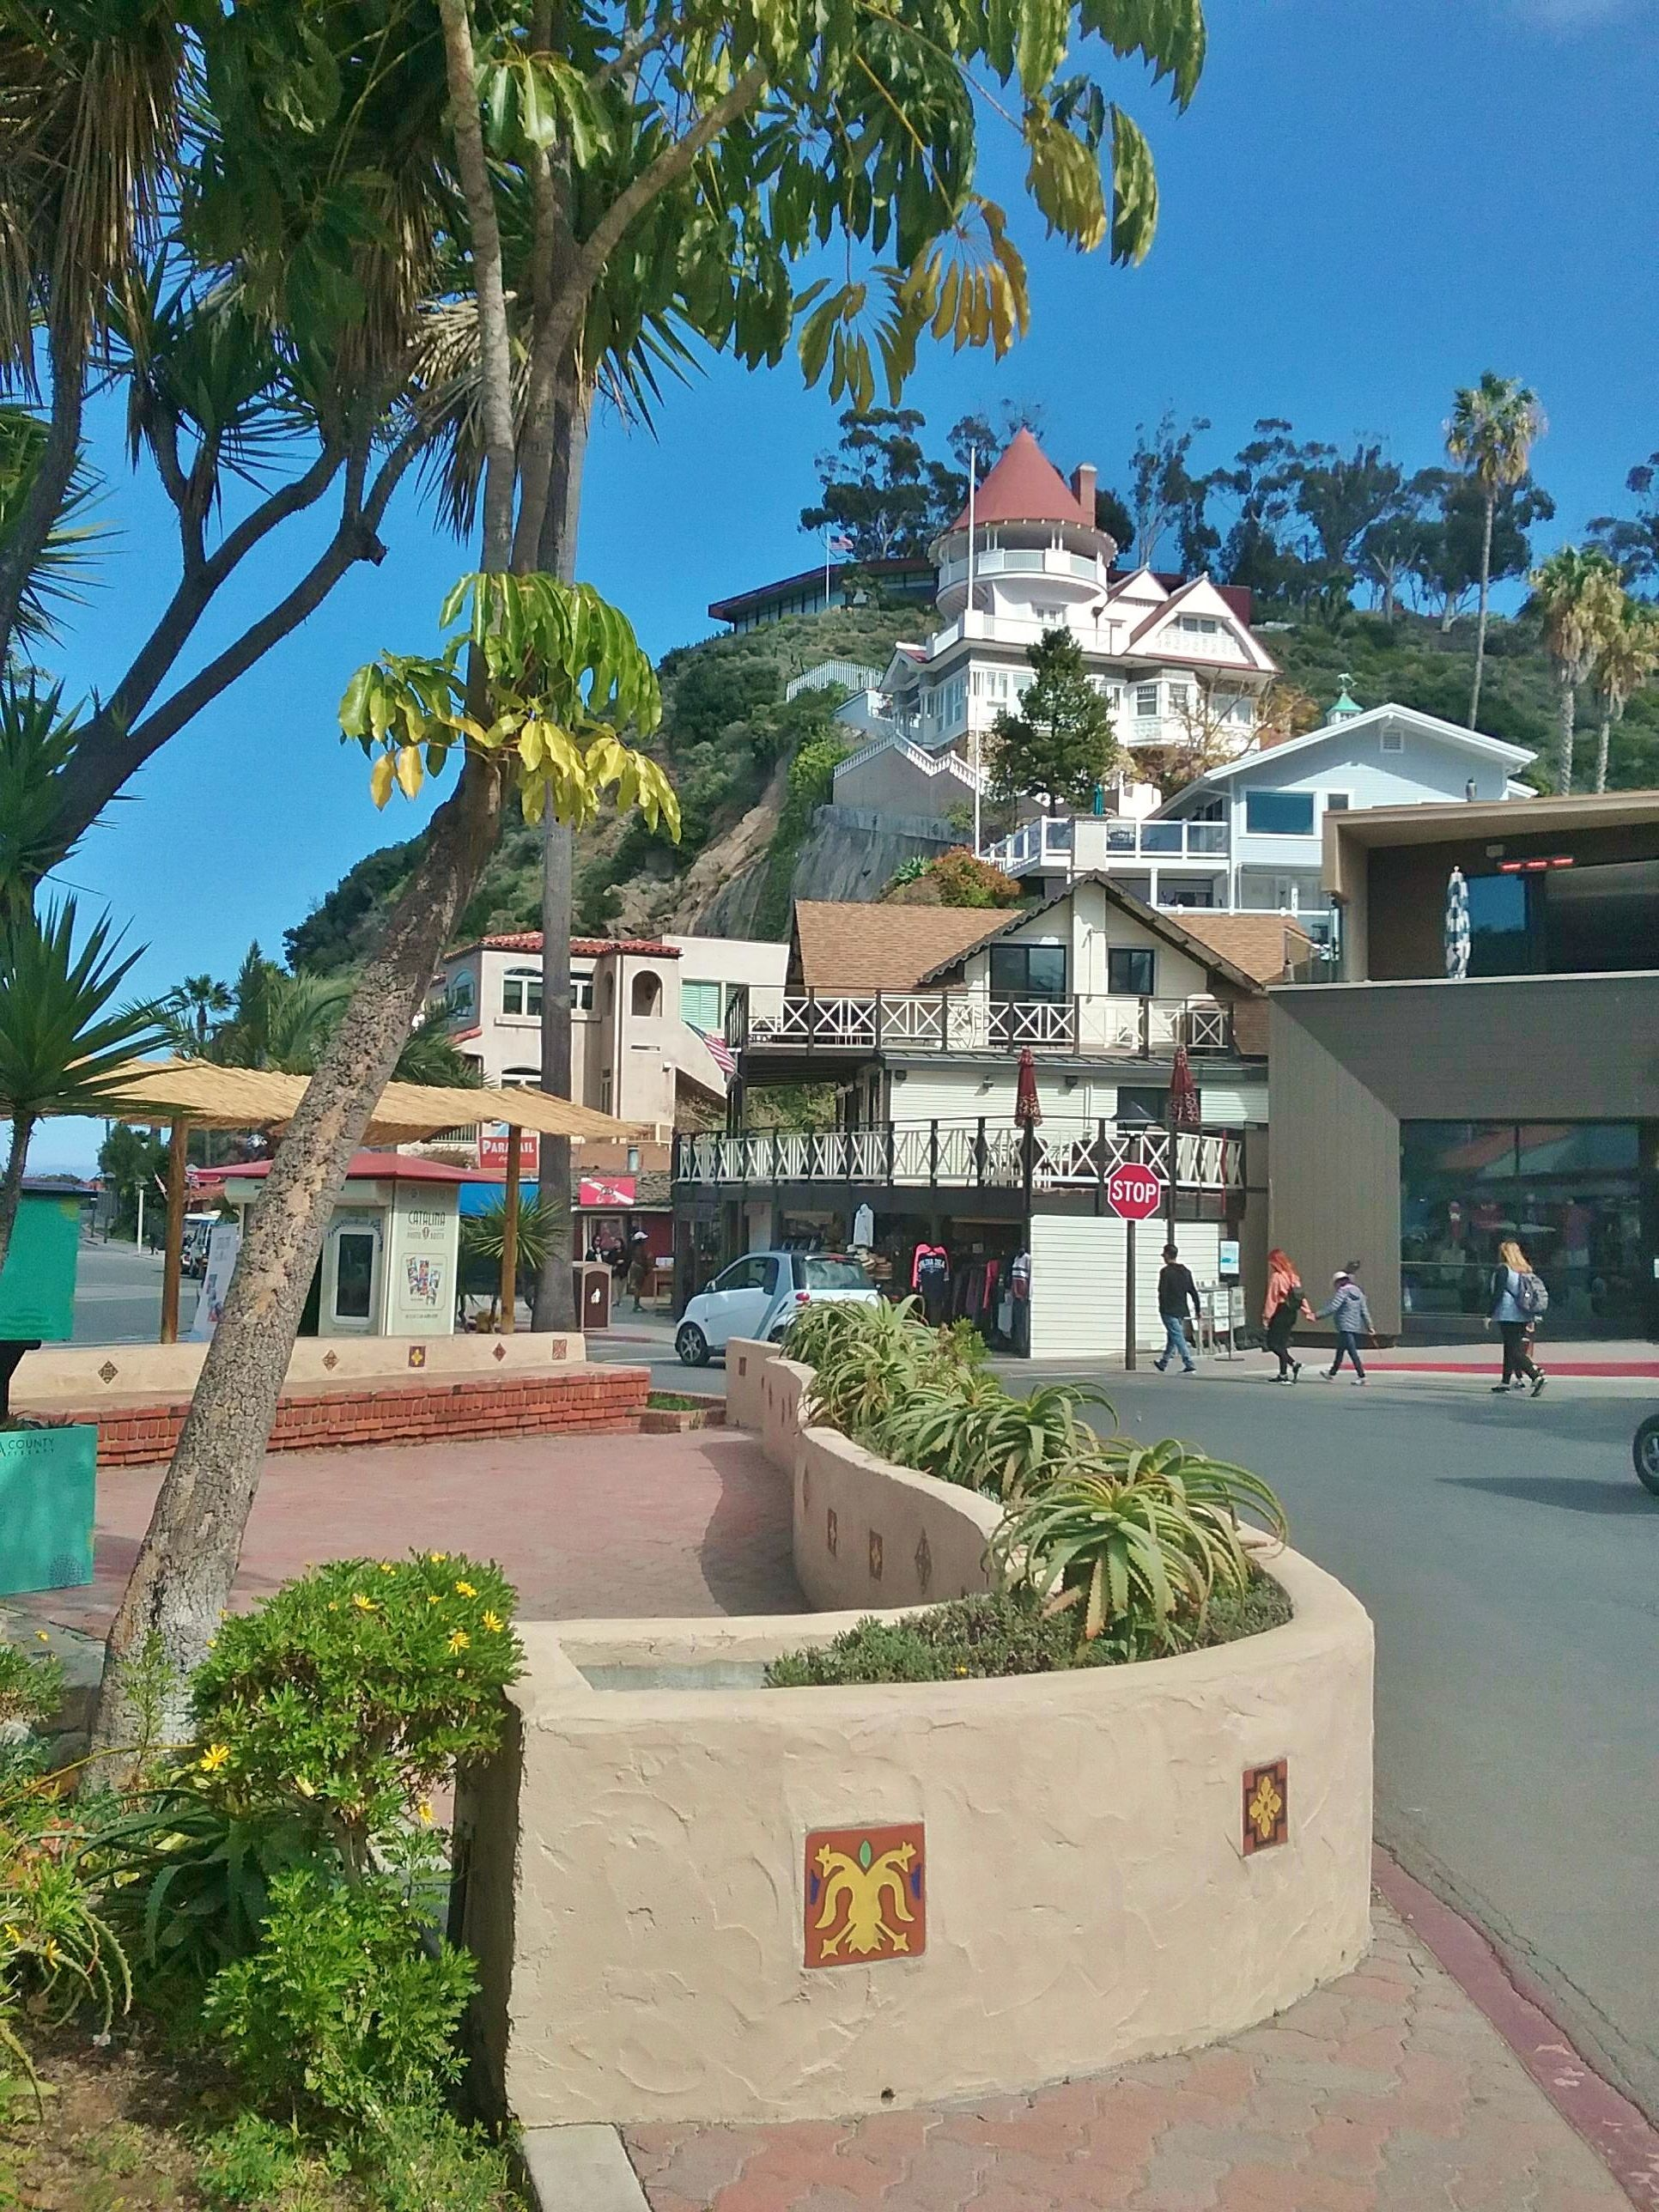 Catalina Island S High Cost Of Living Greater La Kcrw